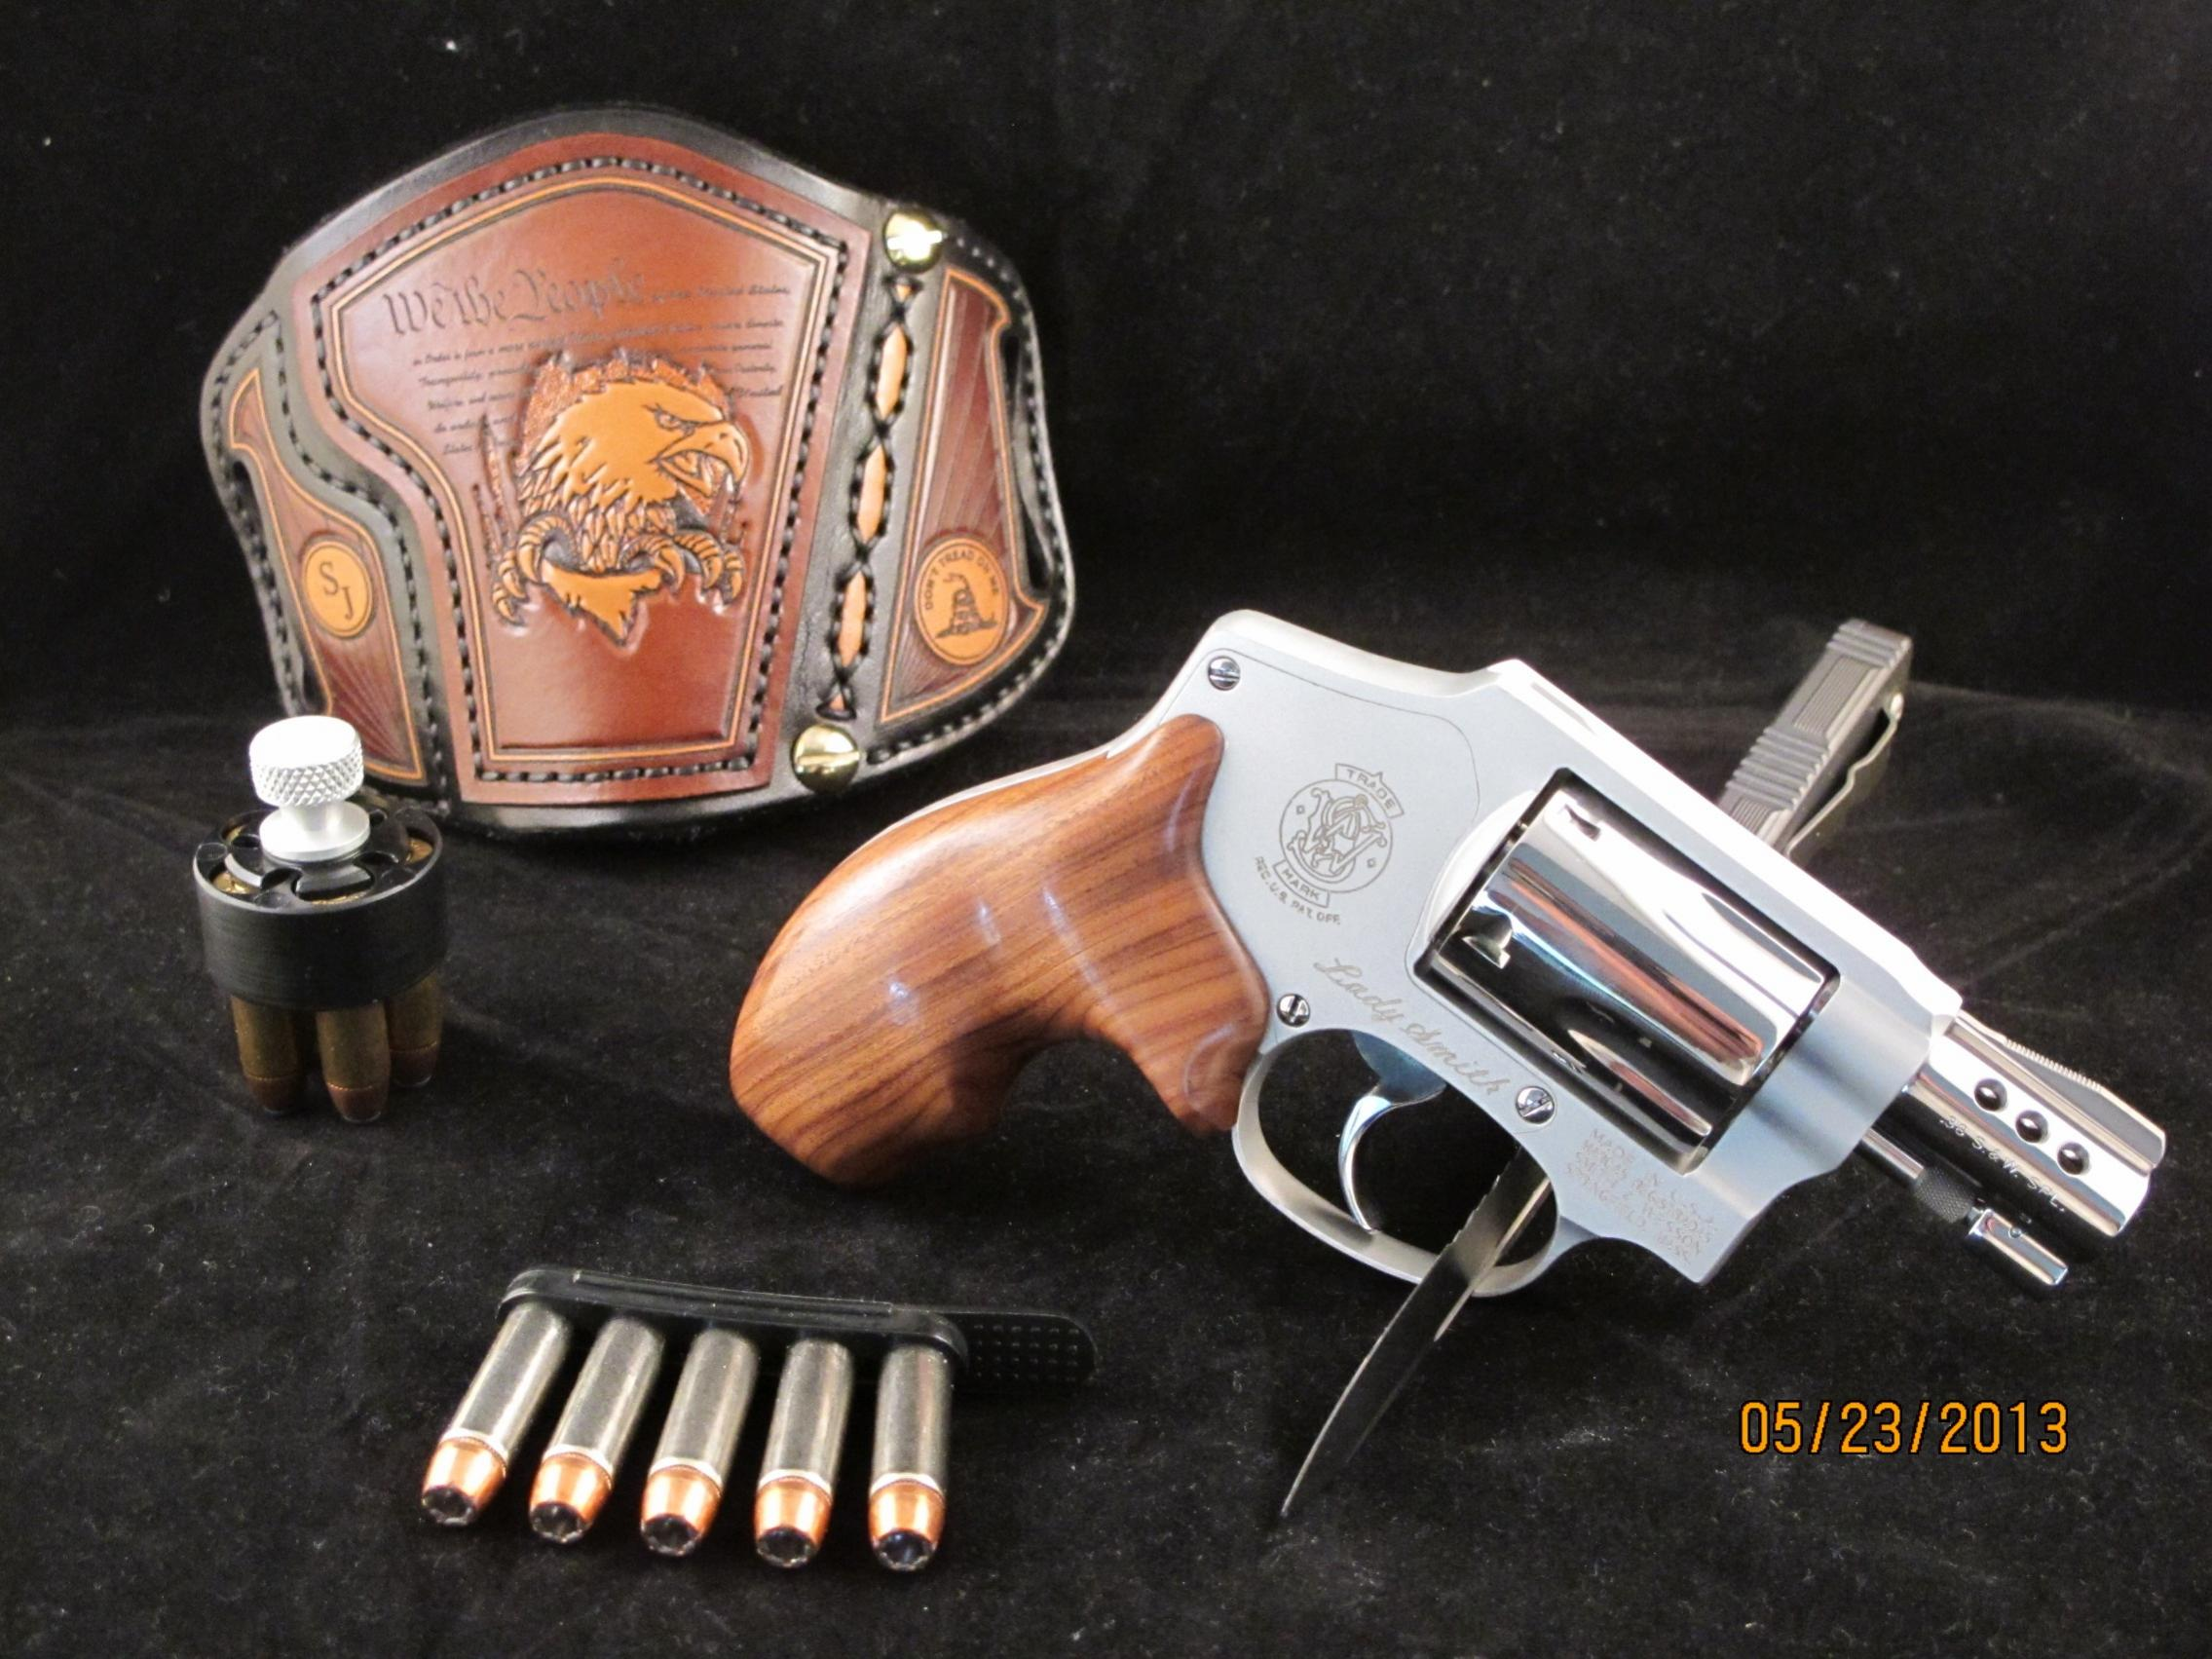 New BUG review: Smith & Wesson 642-image.jpg